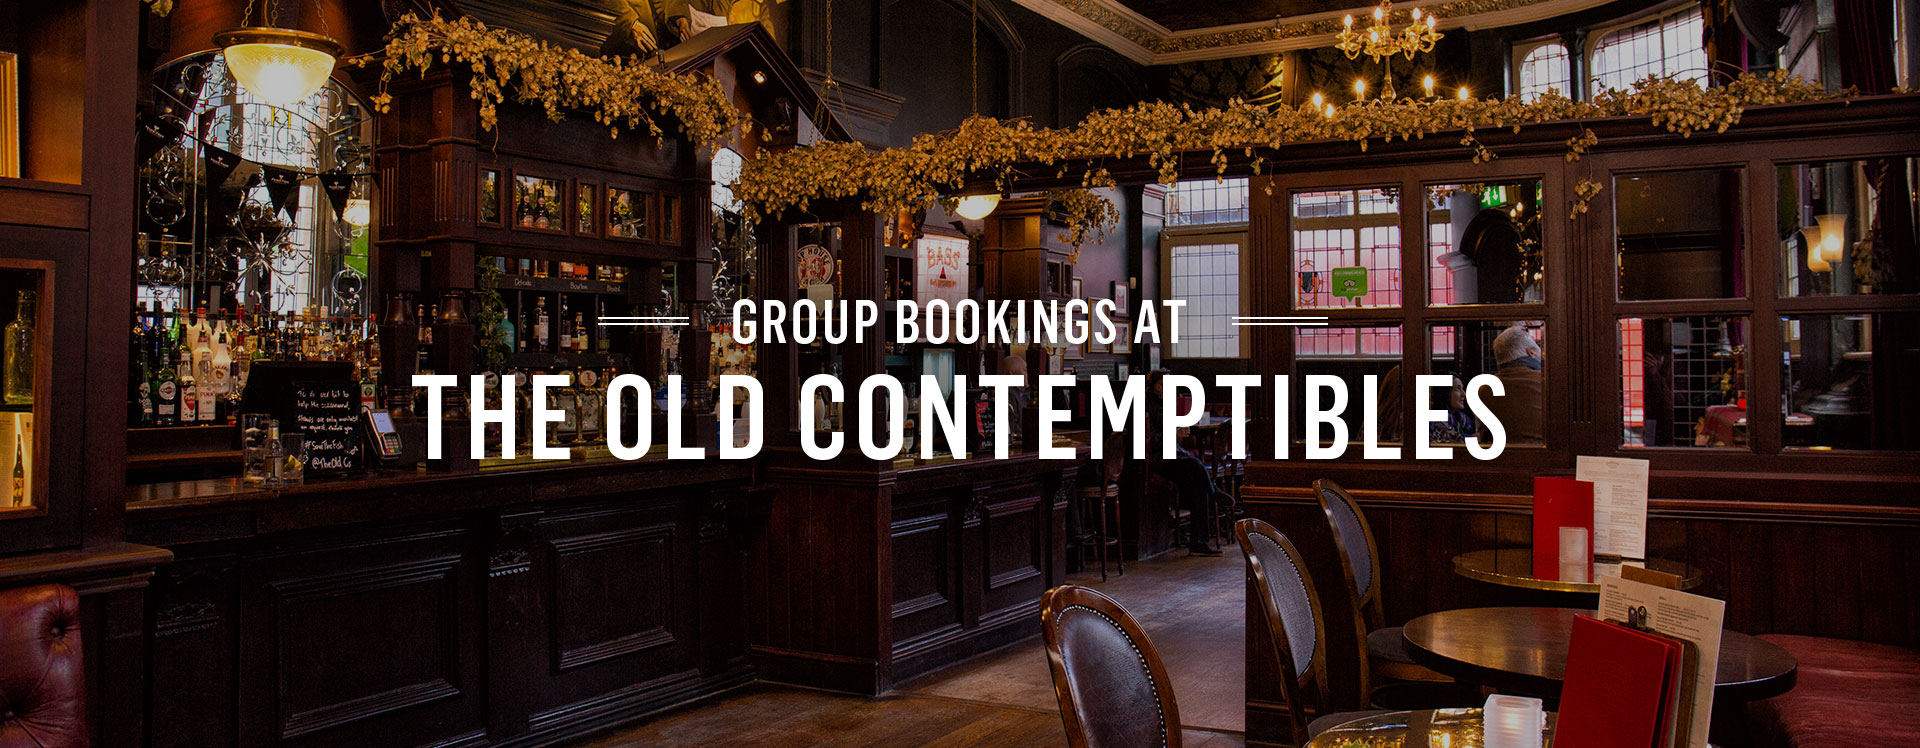 Group Bookings at The Old Contemptibles